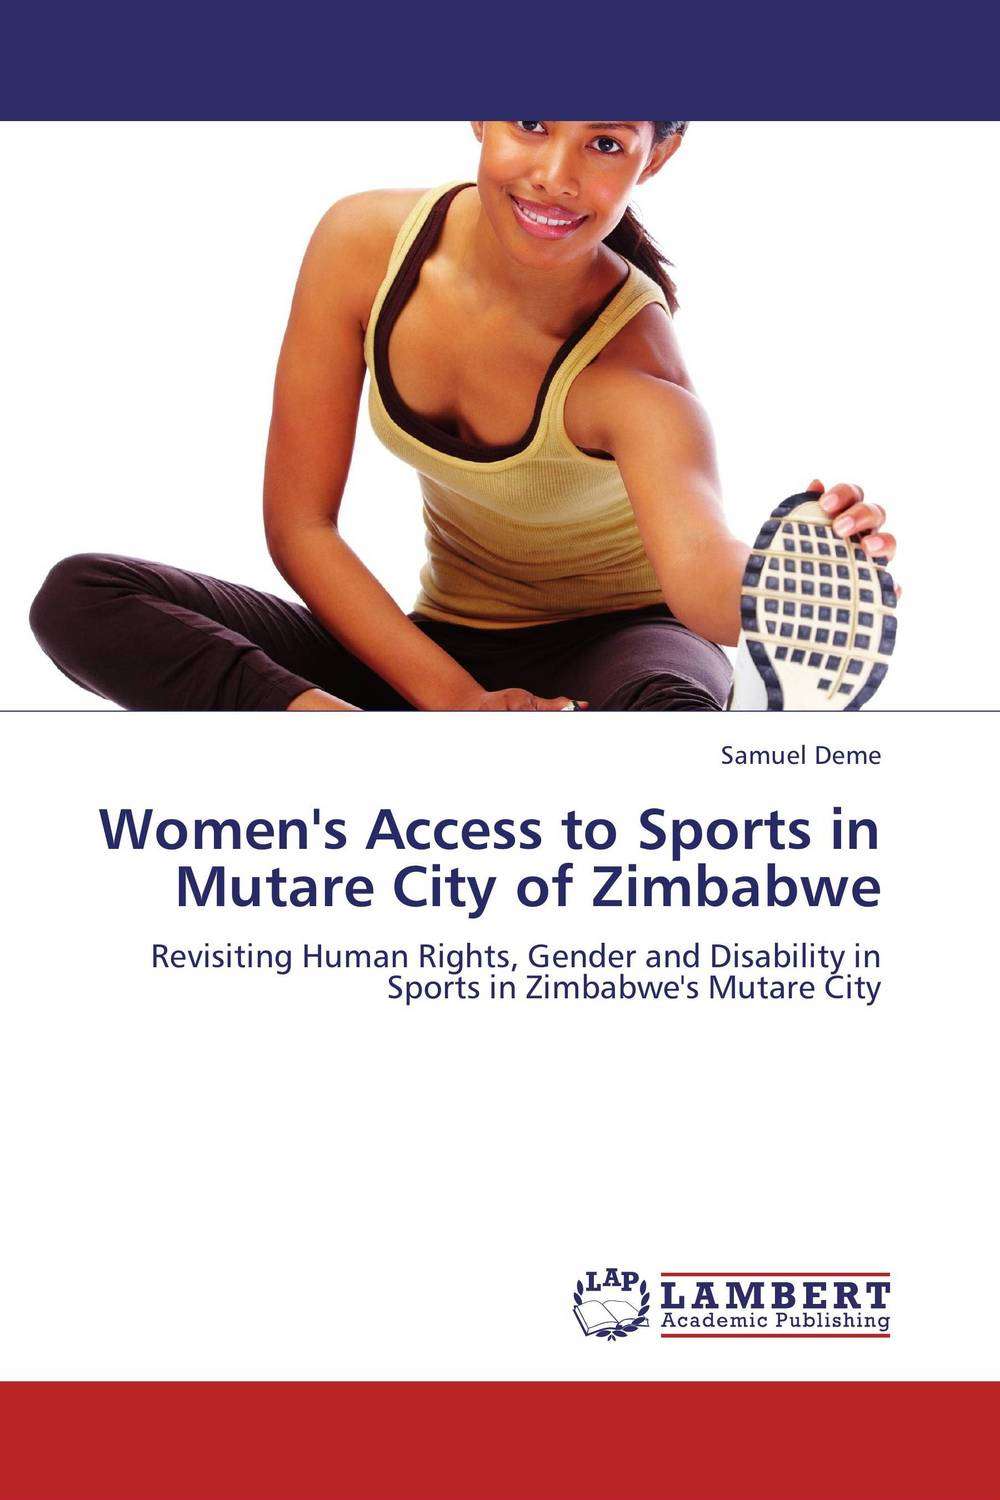 Women's Access to Sports in Mutare City of Zimbabwe ways of curbing tax evasion in zimbabwe